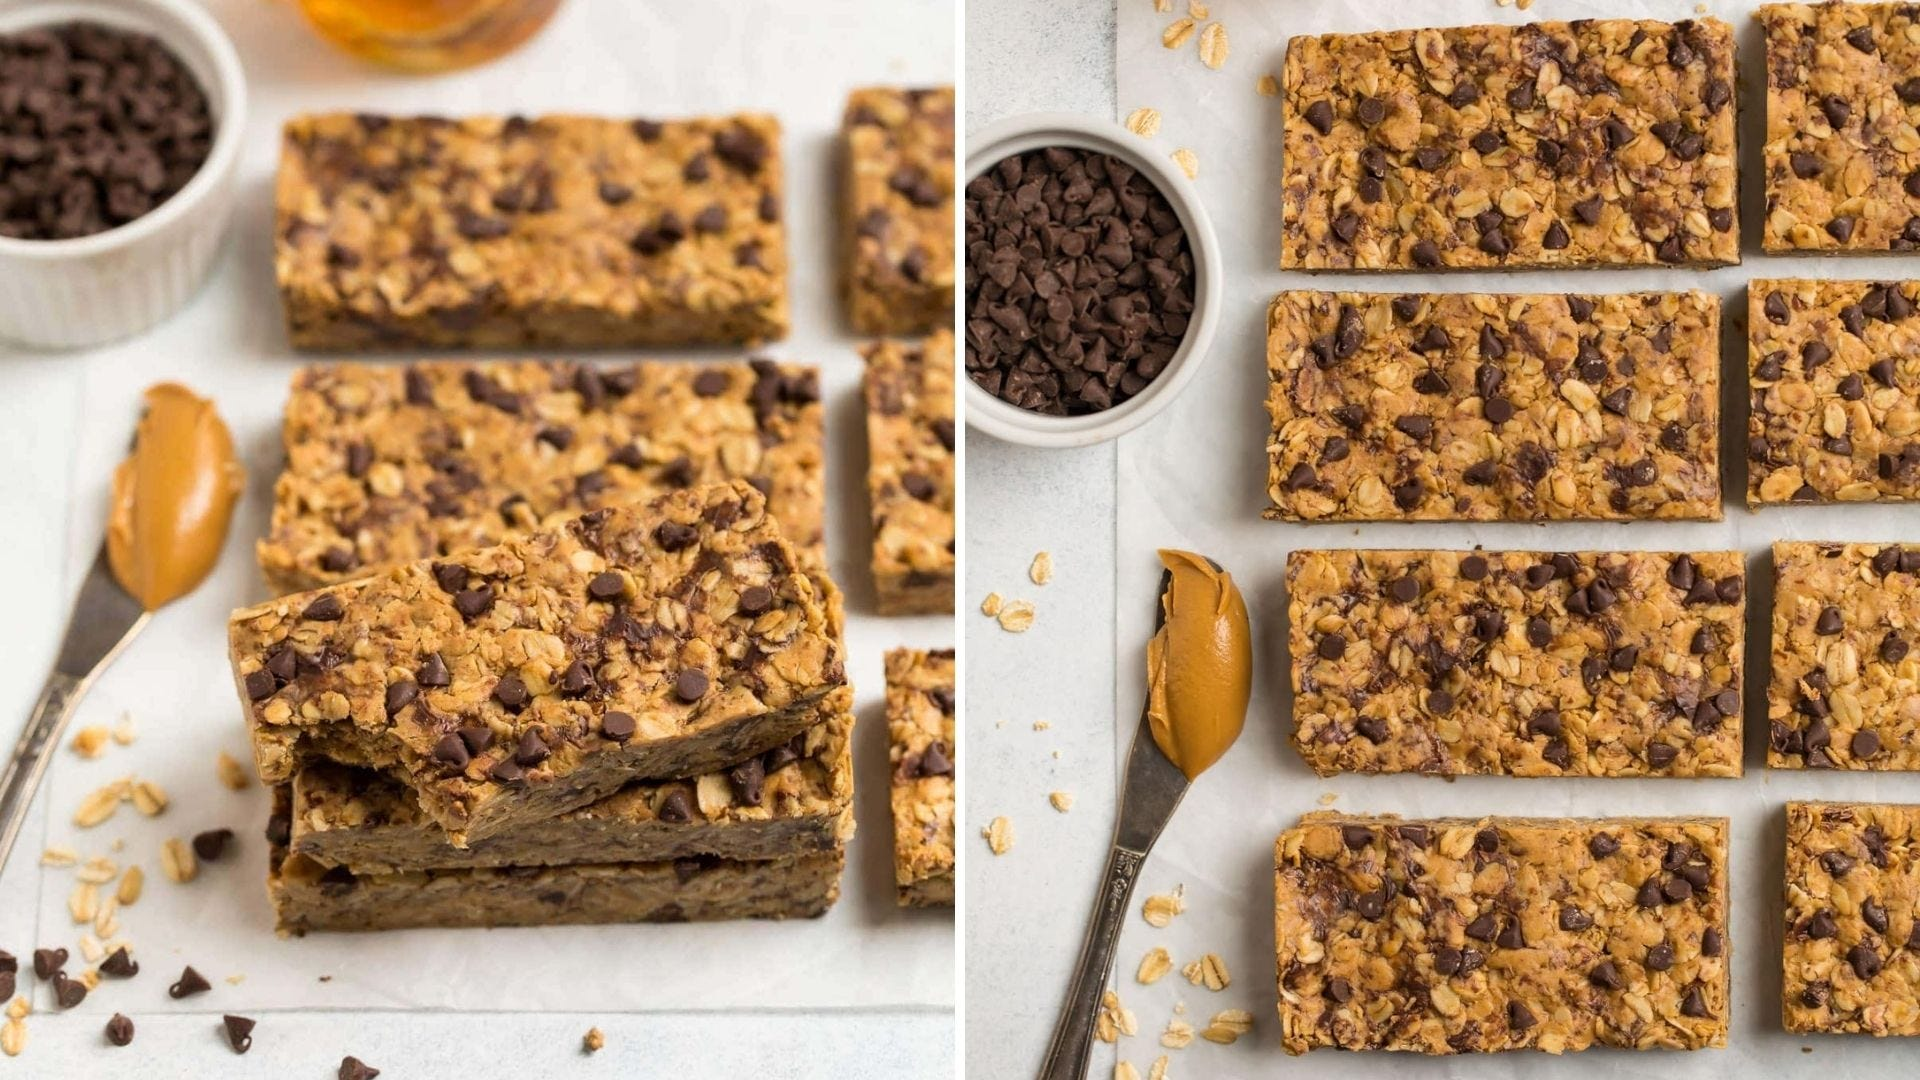 Protein bars made with oats and chocolate chips